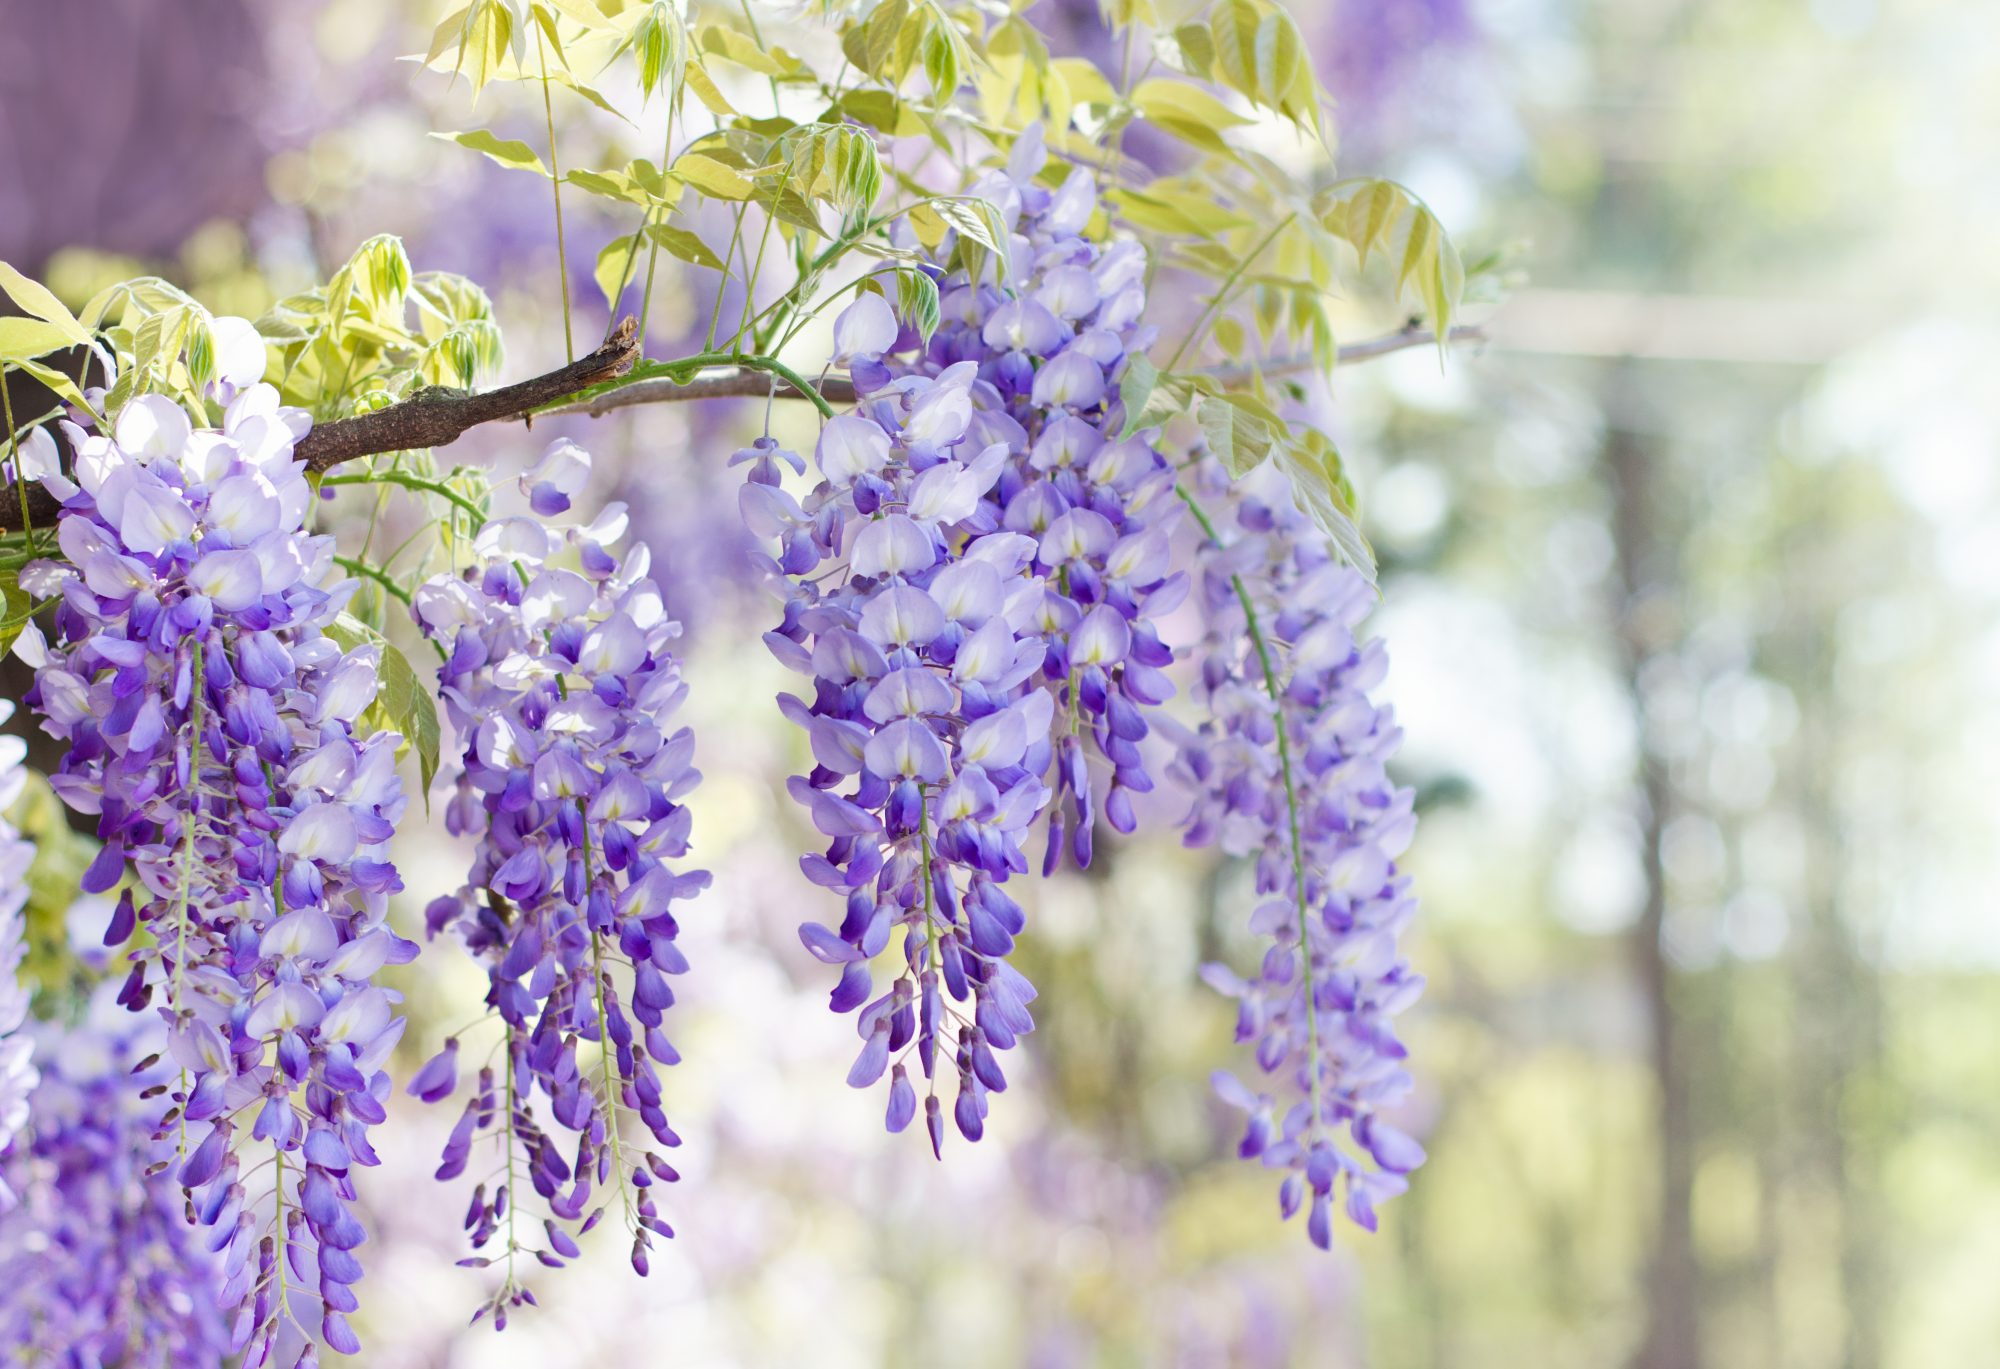 Close up of wisteria flowers blooming in spring